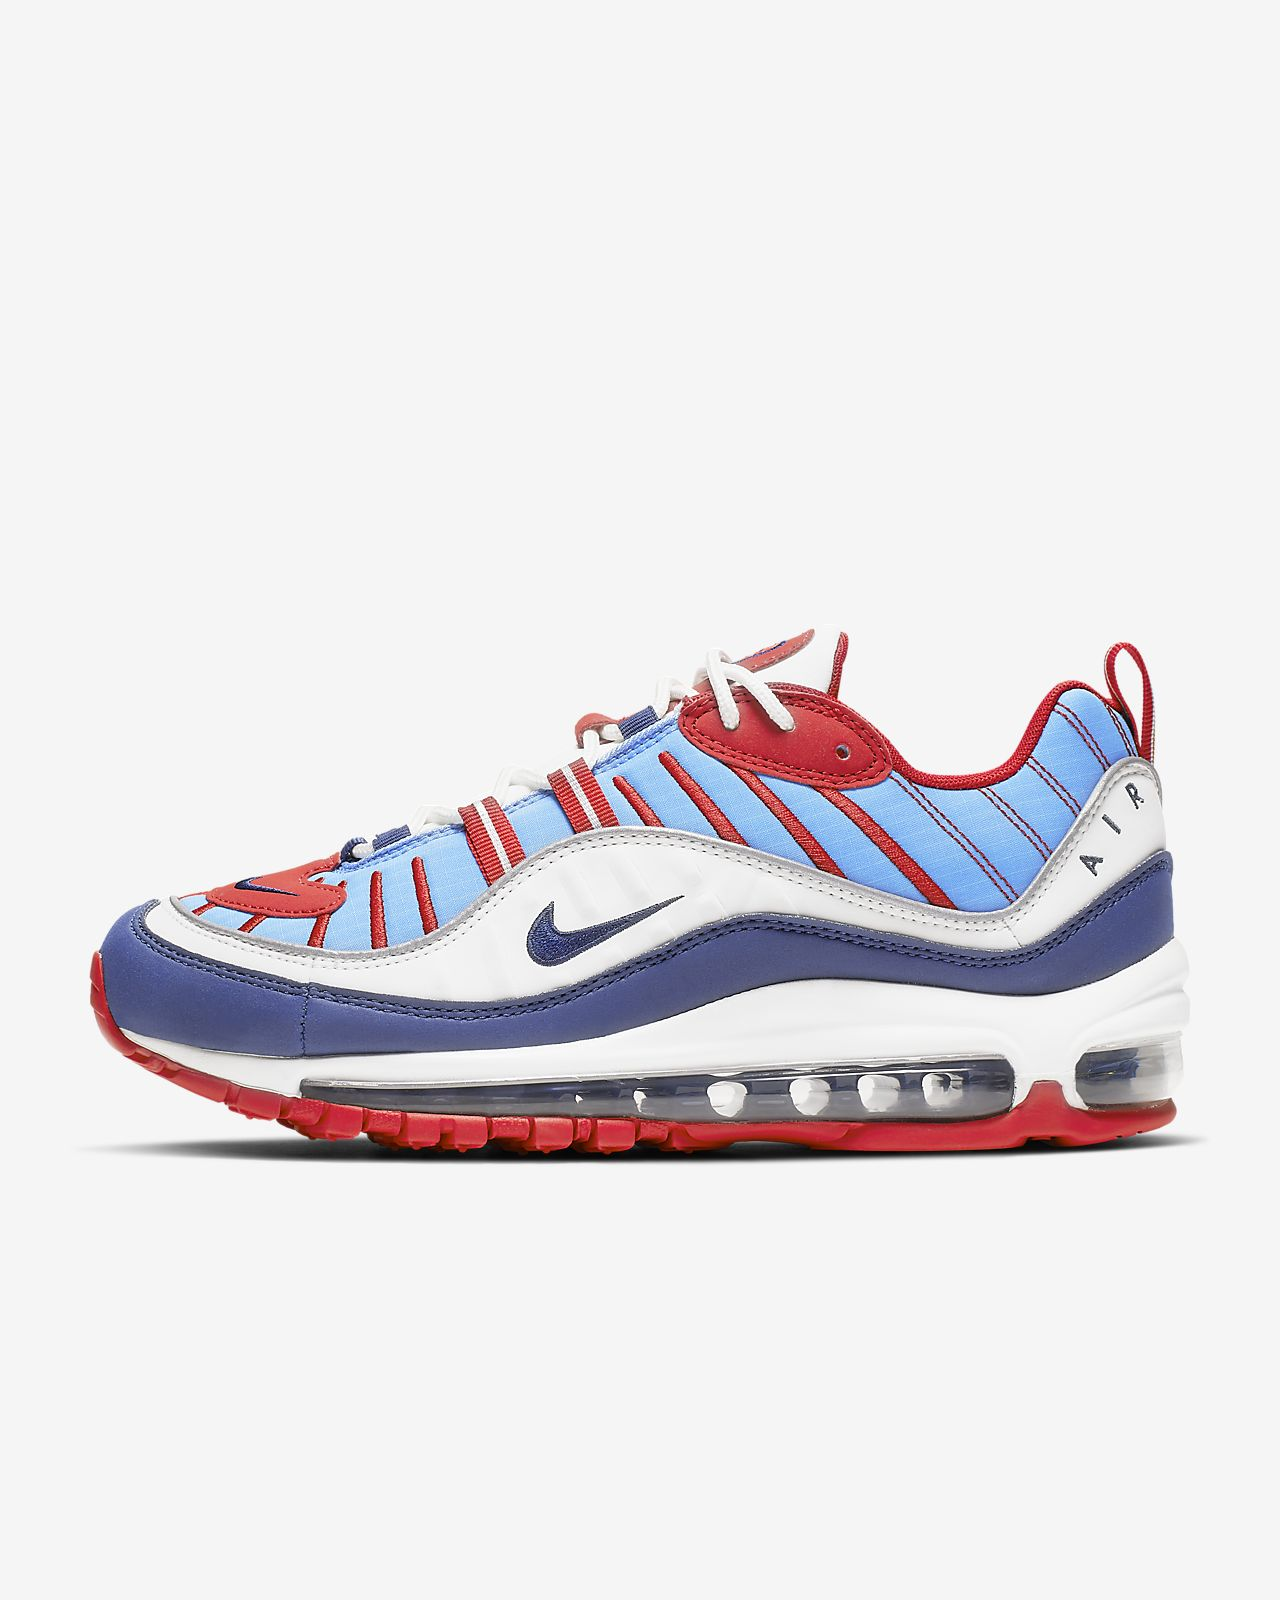 newest 58571 d3394 ... Chaussure Nike Air Max 98 pour Femme